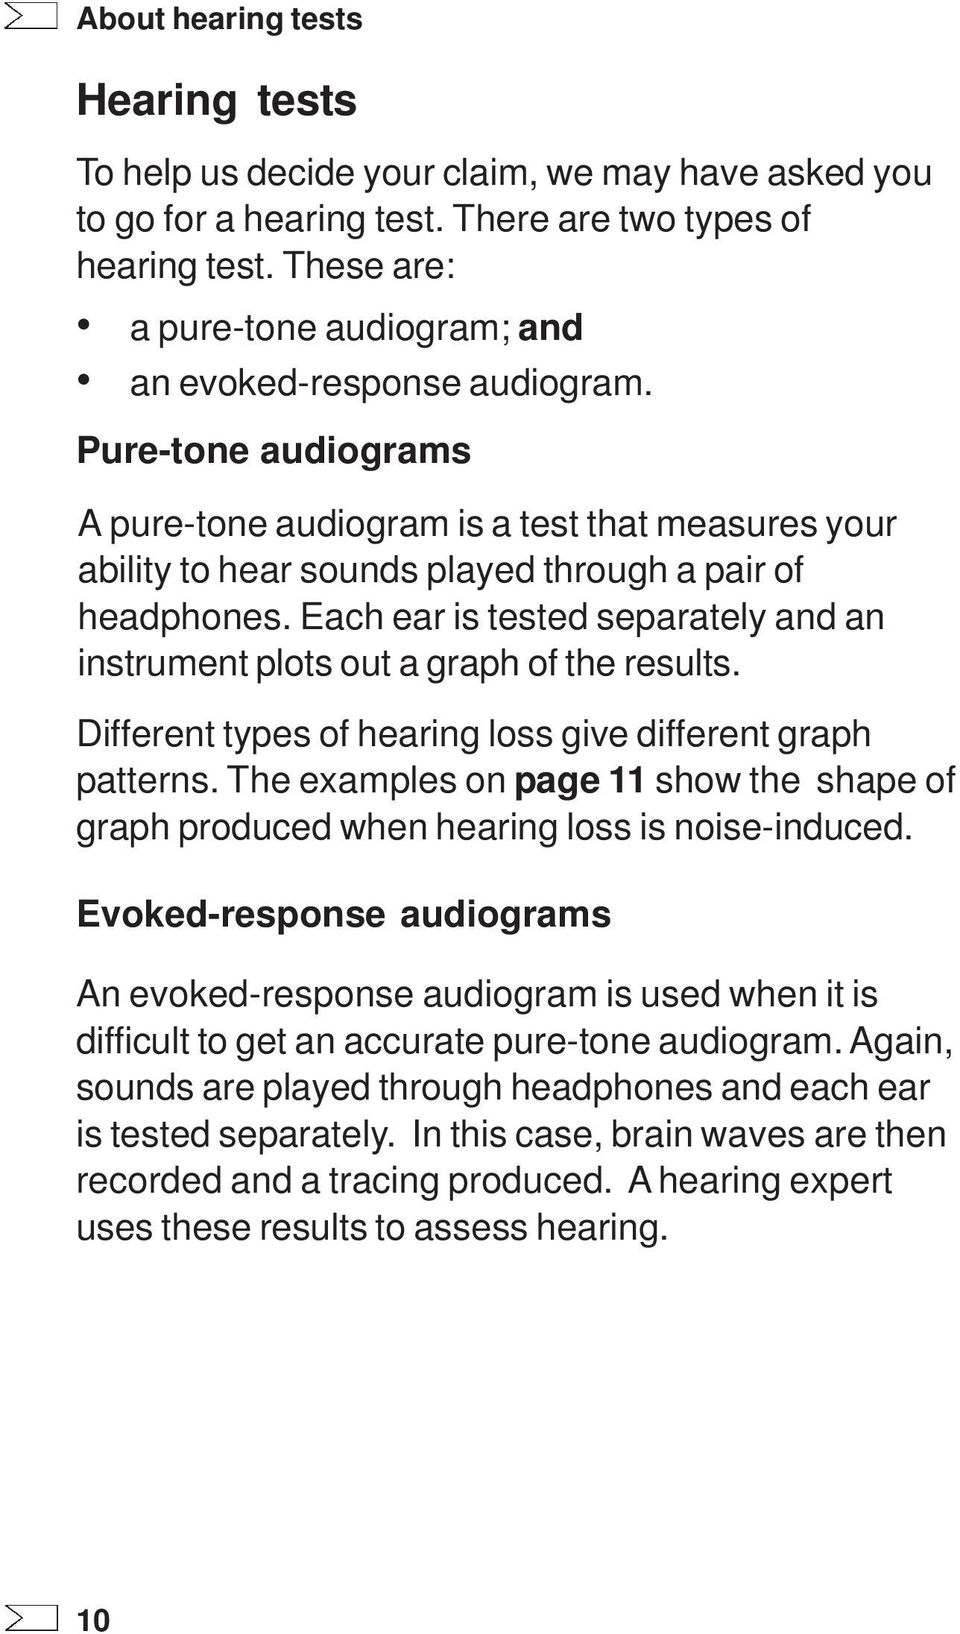 Each ear is tested separately and an instrument plots out a graph of the results. Different types of hearing loss give different graph patterns.